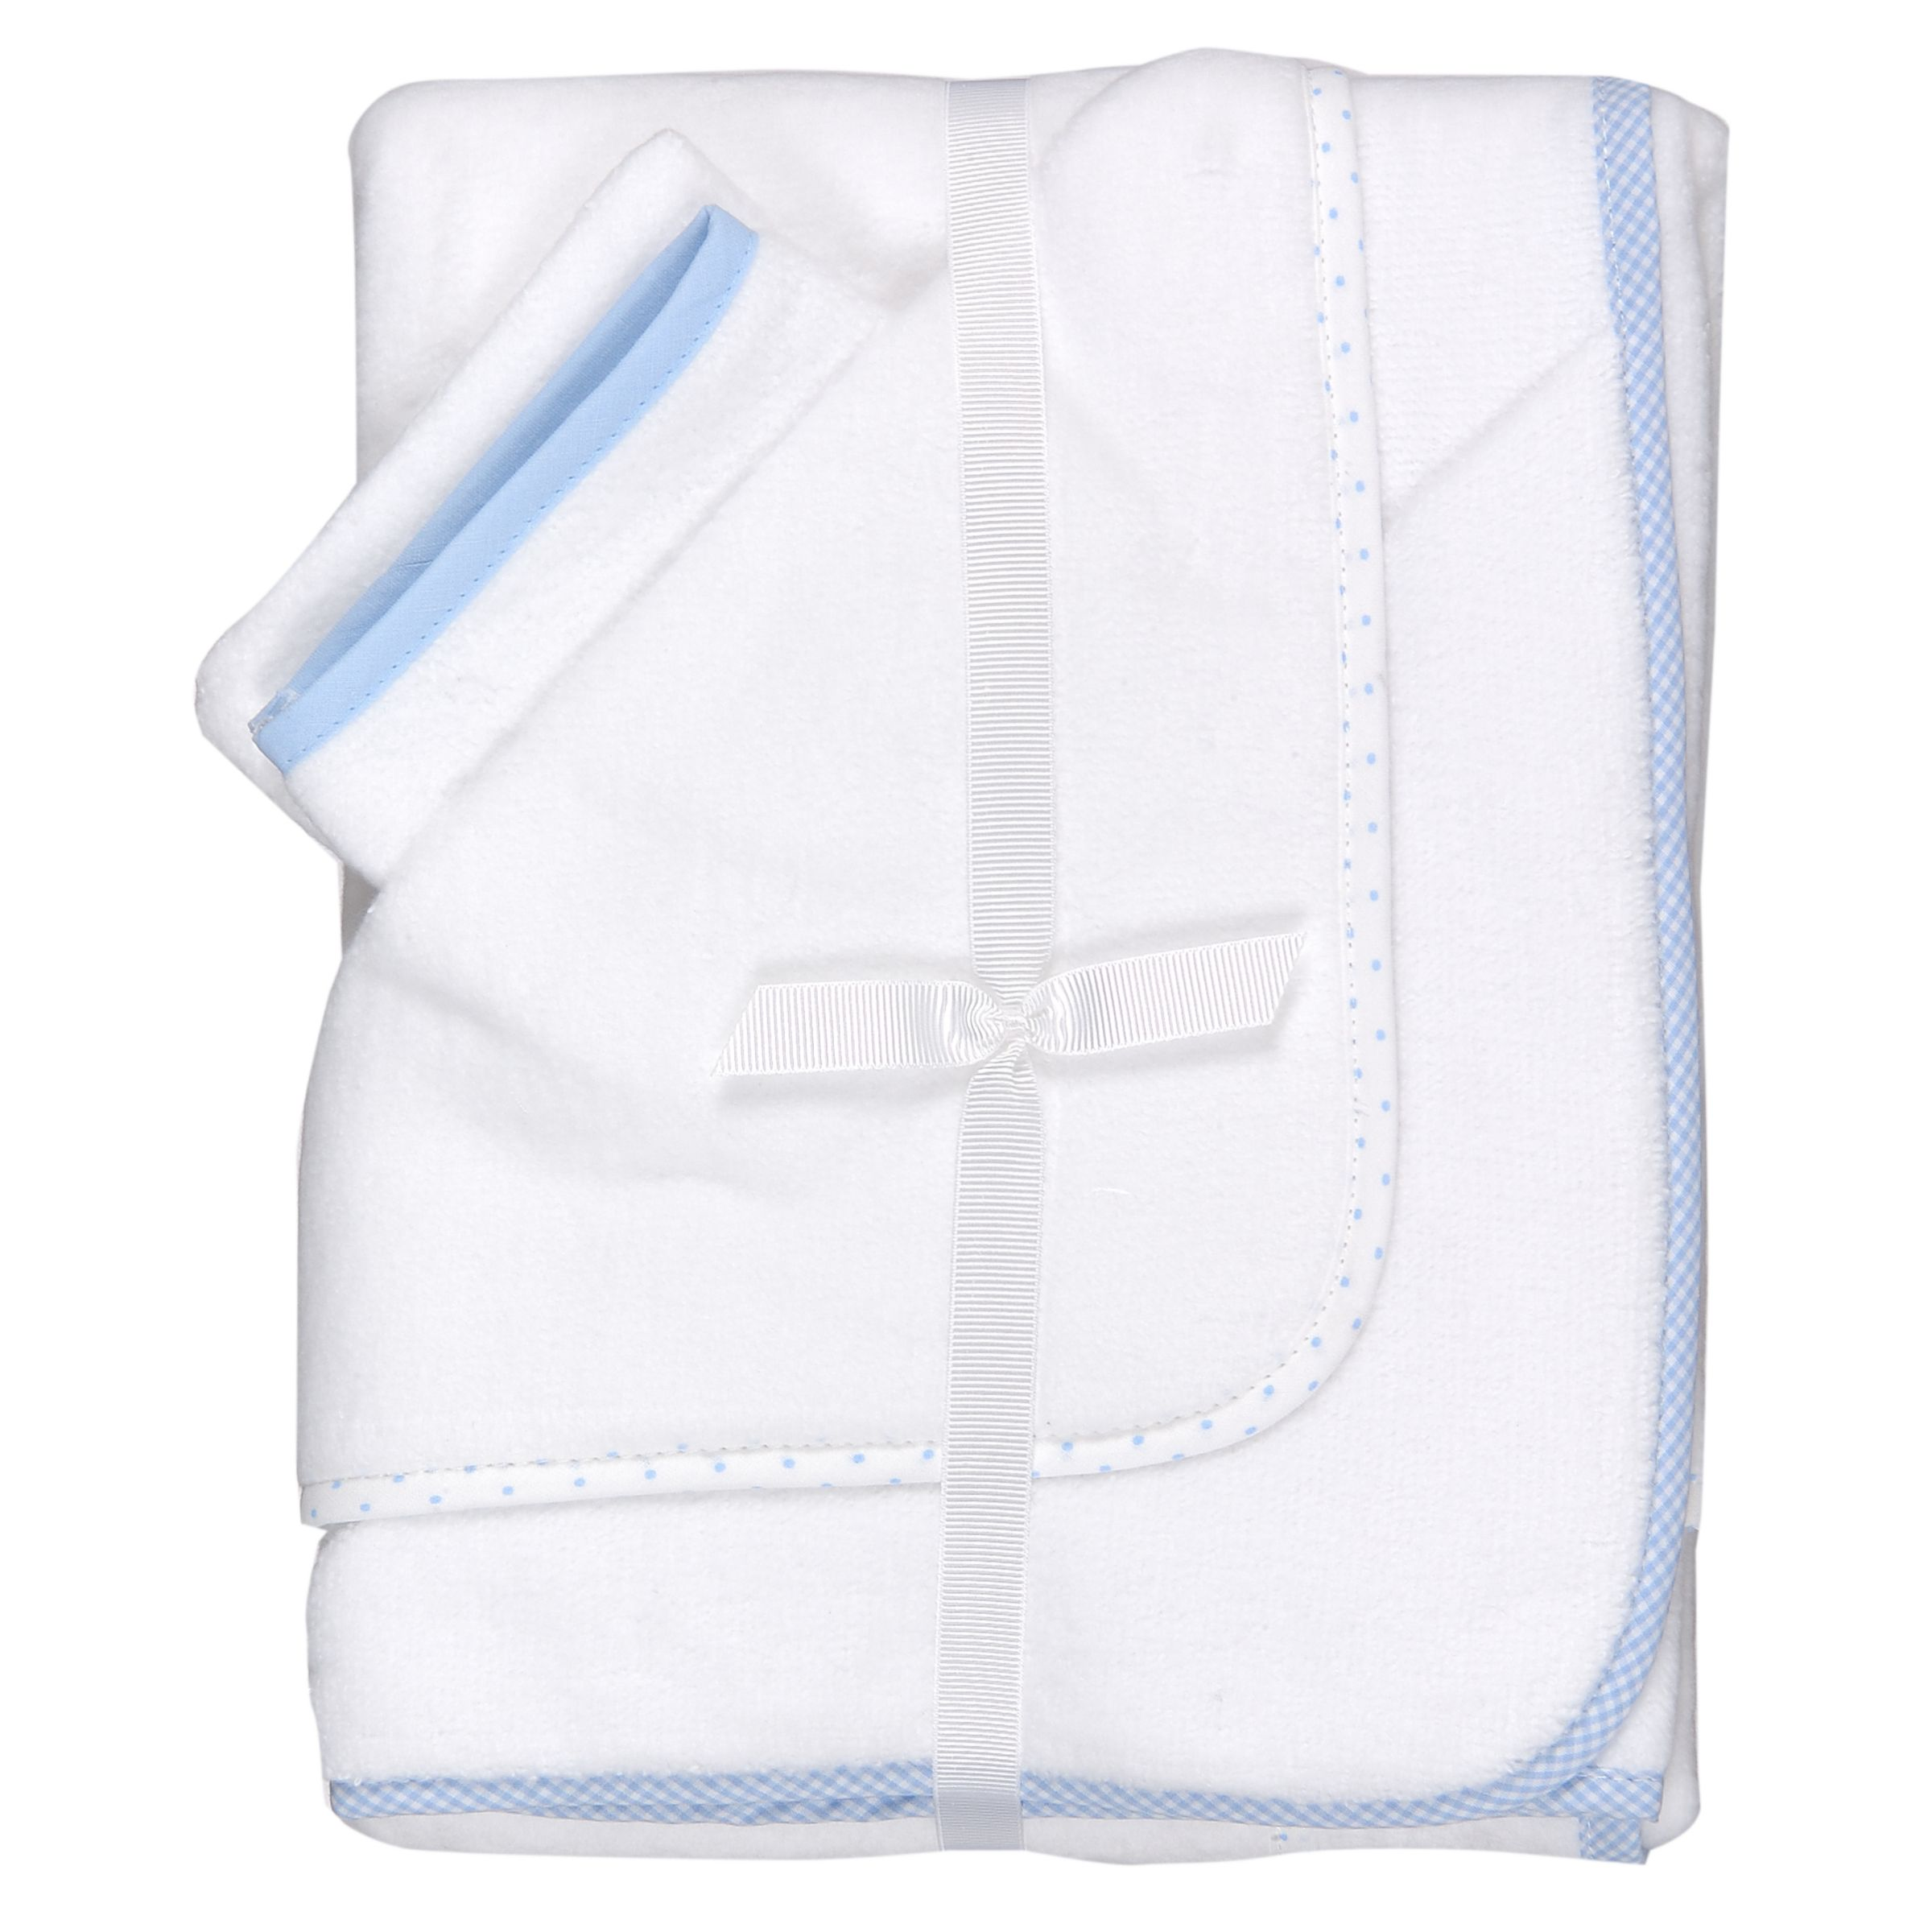 Cuddlerobes, Pack of 2, White and Blue